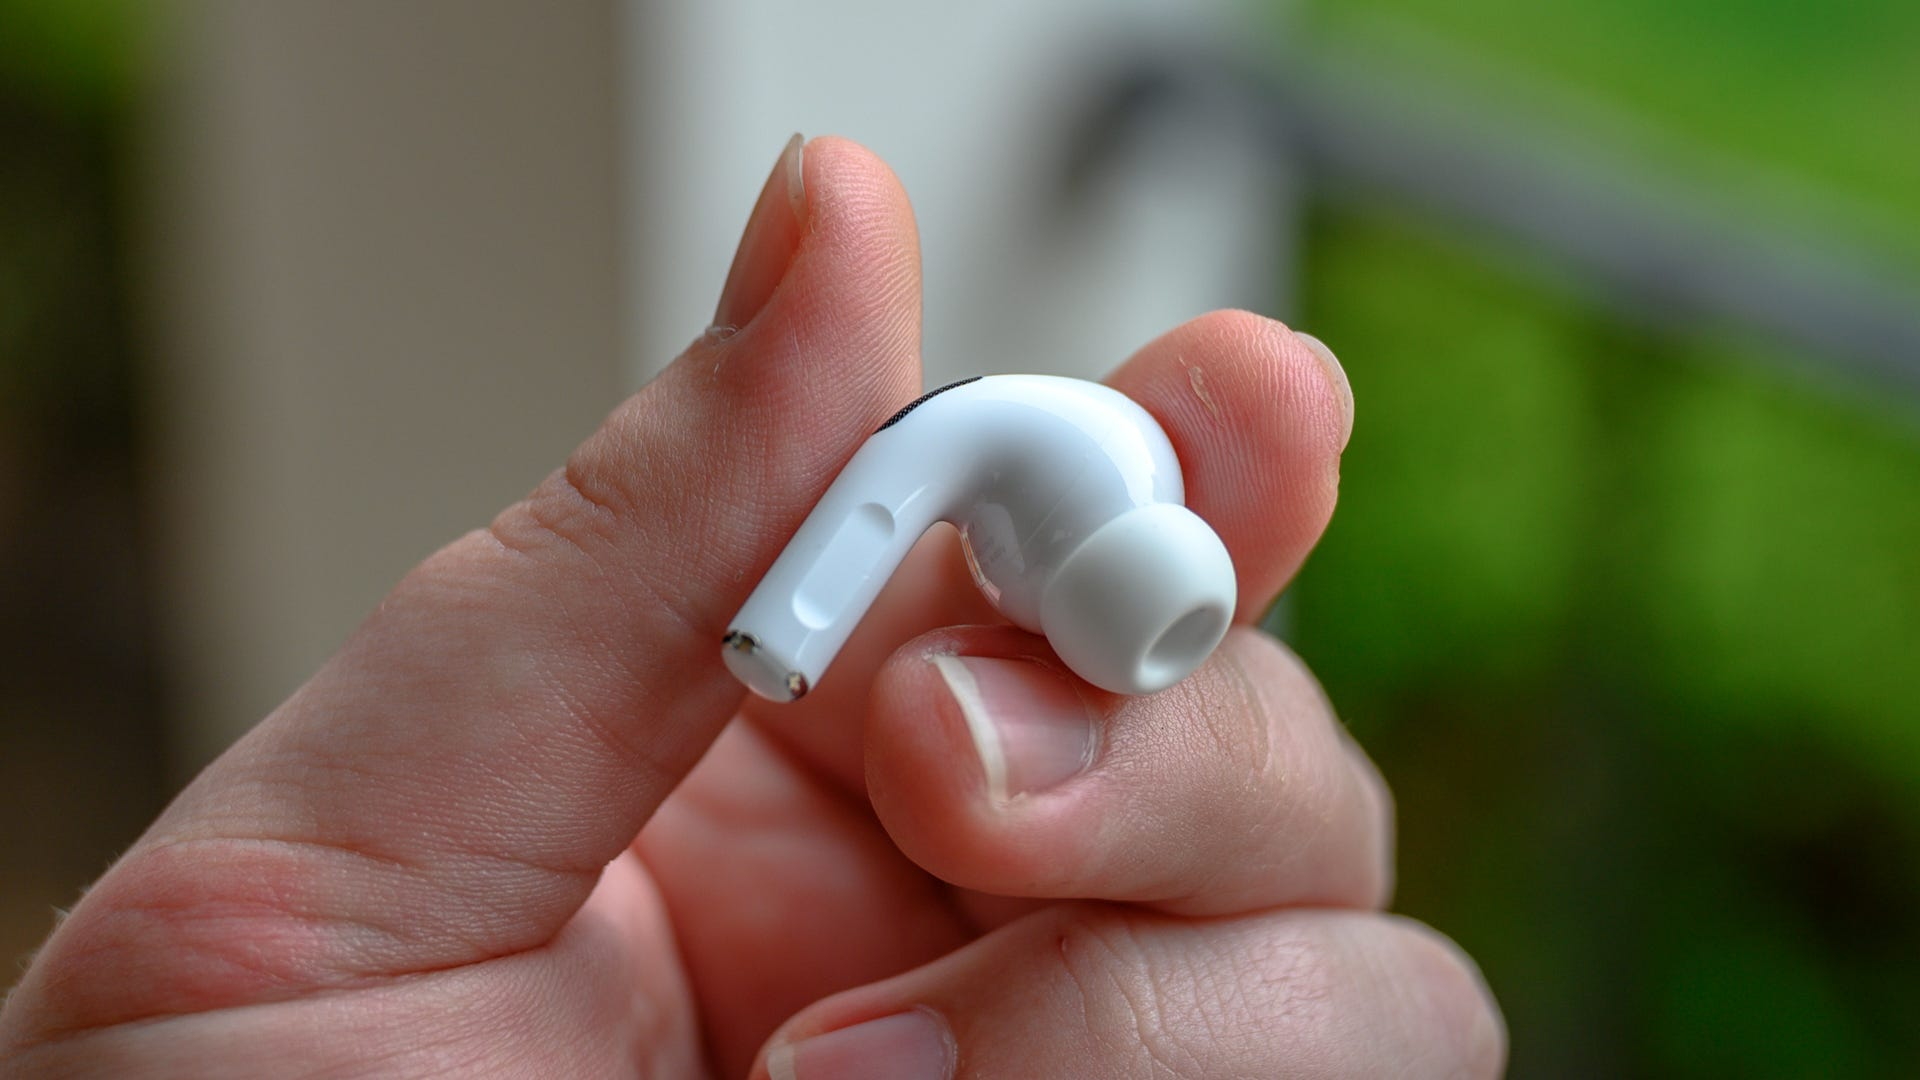 Apple AirPods Pro Force Sensor